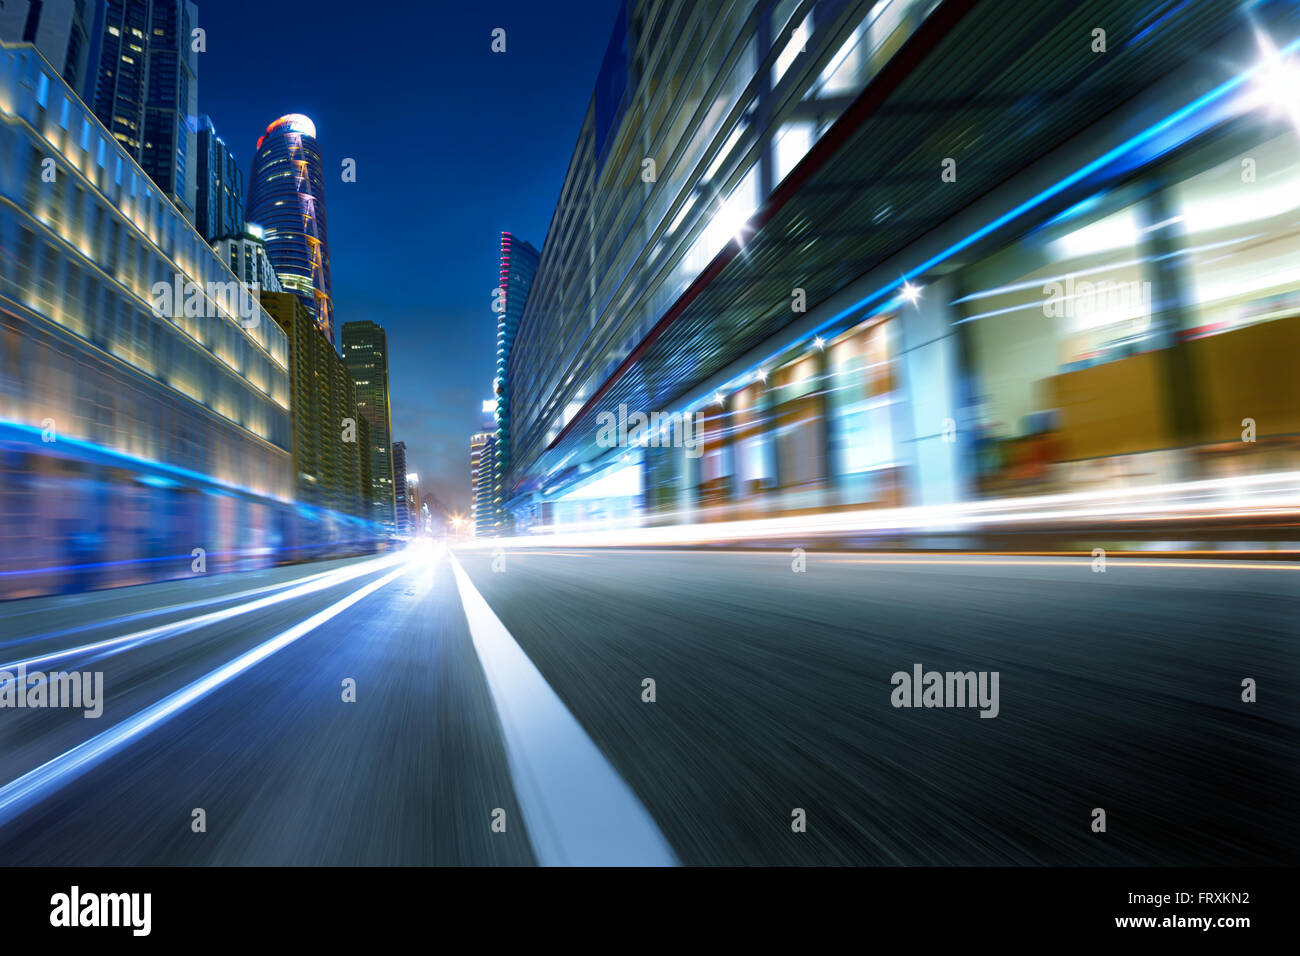 cold mood city street motion blur background - Stock Image